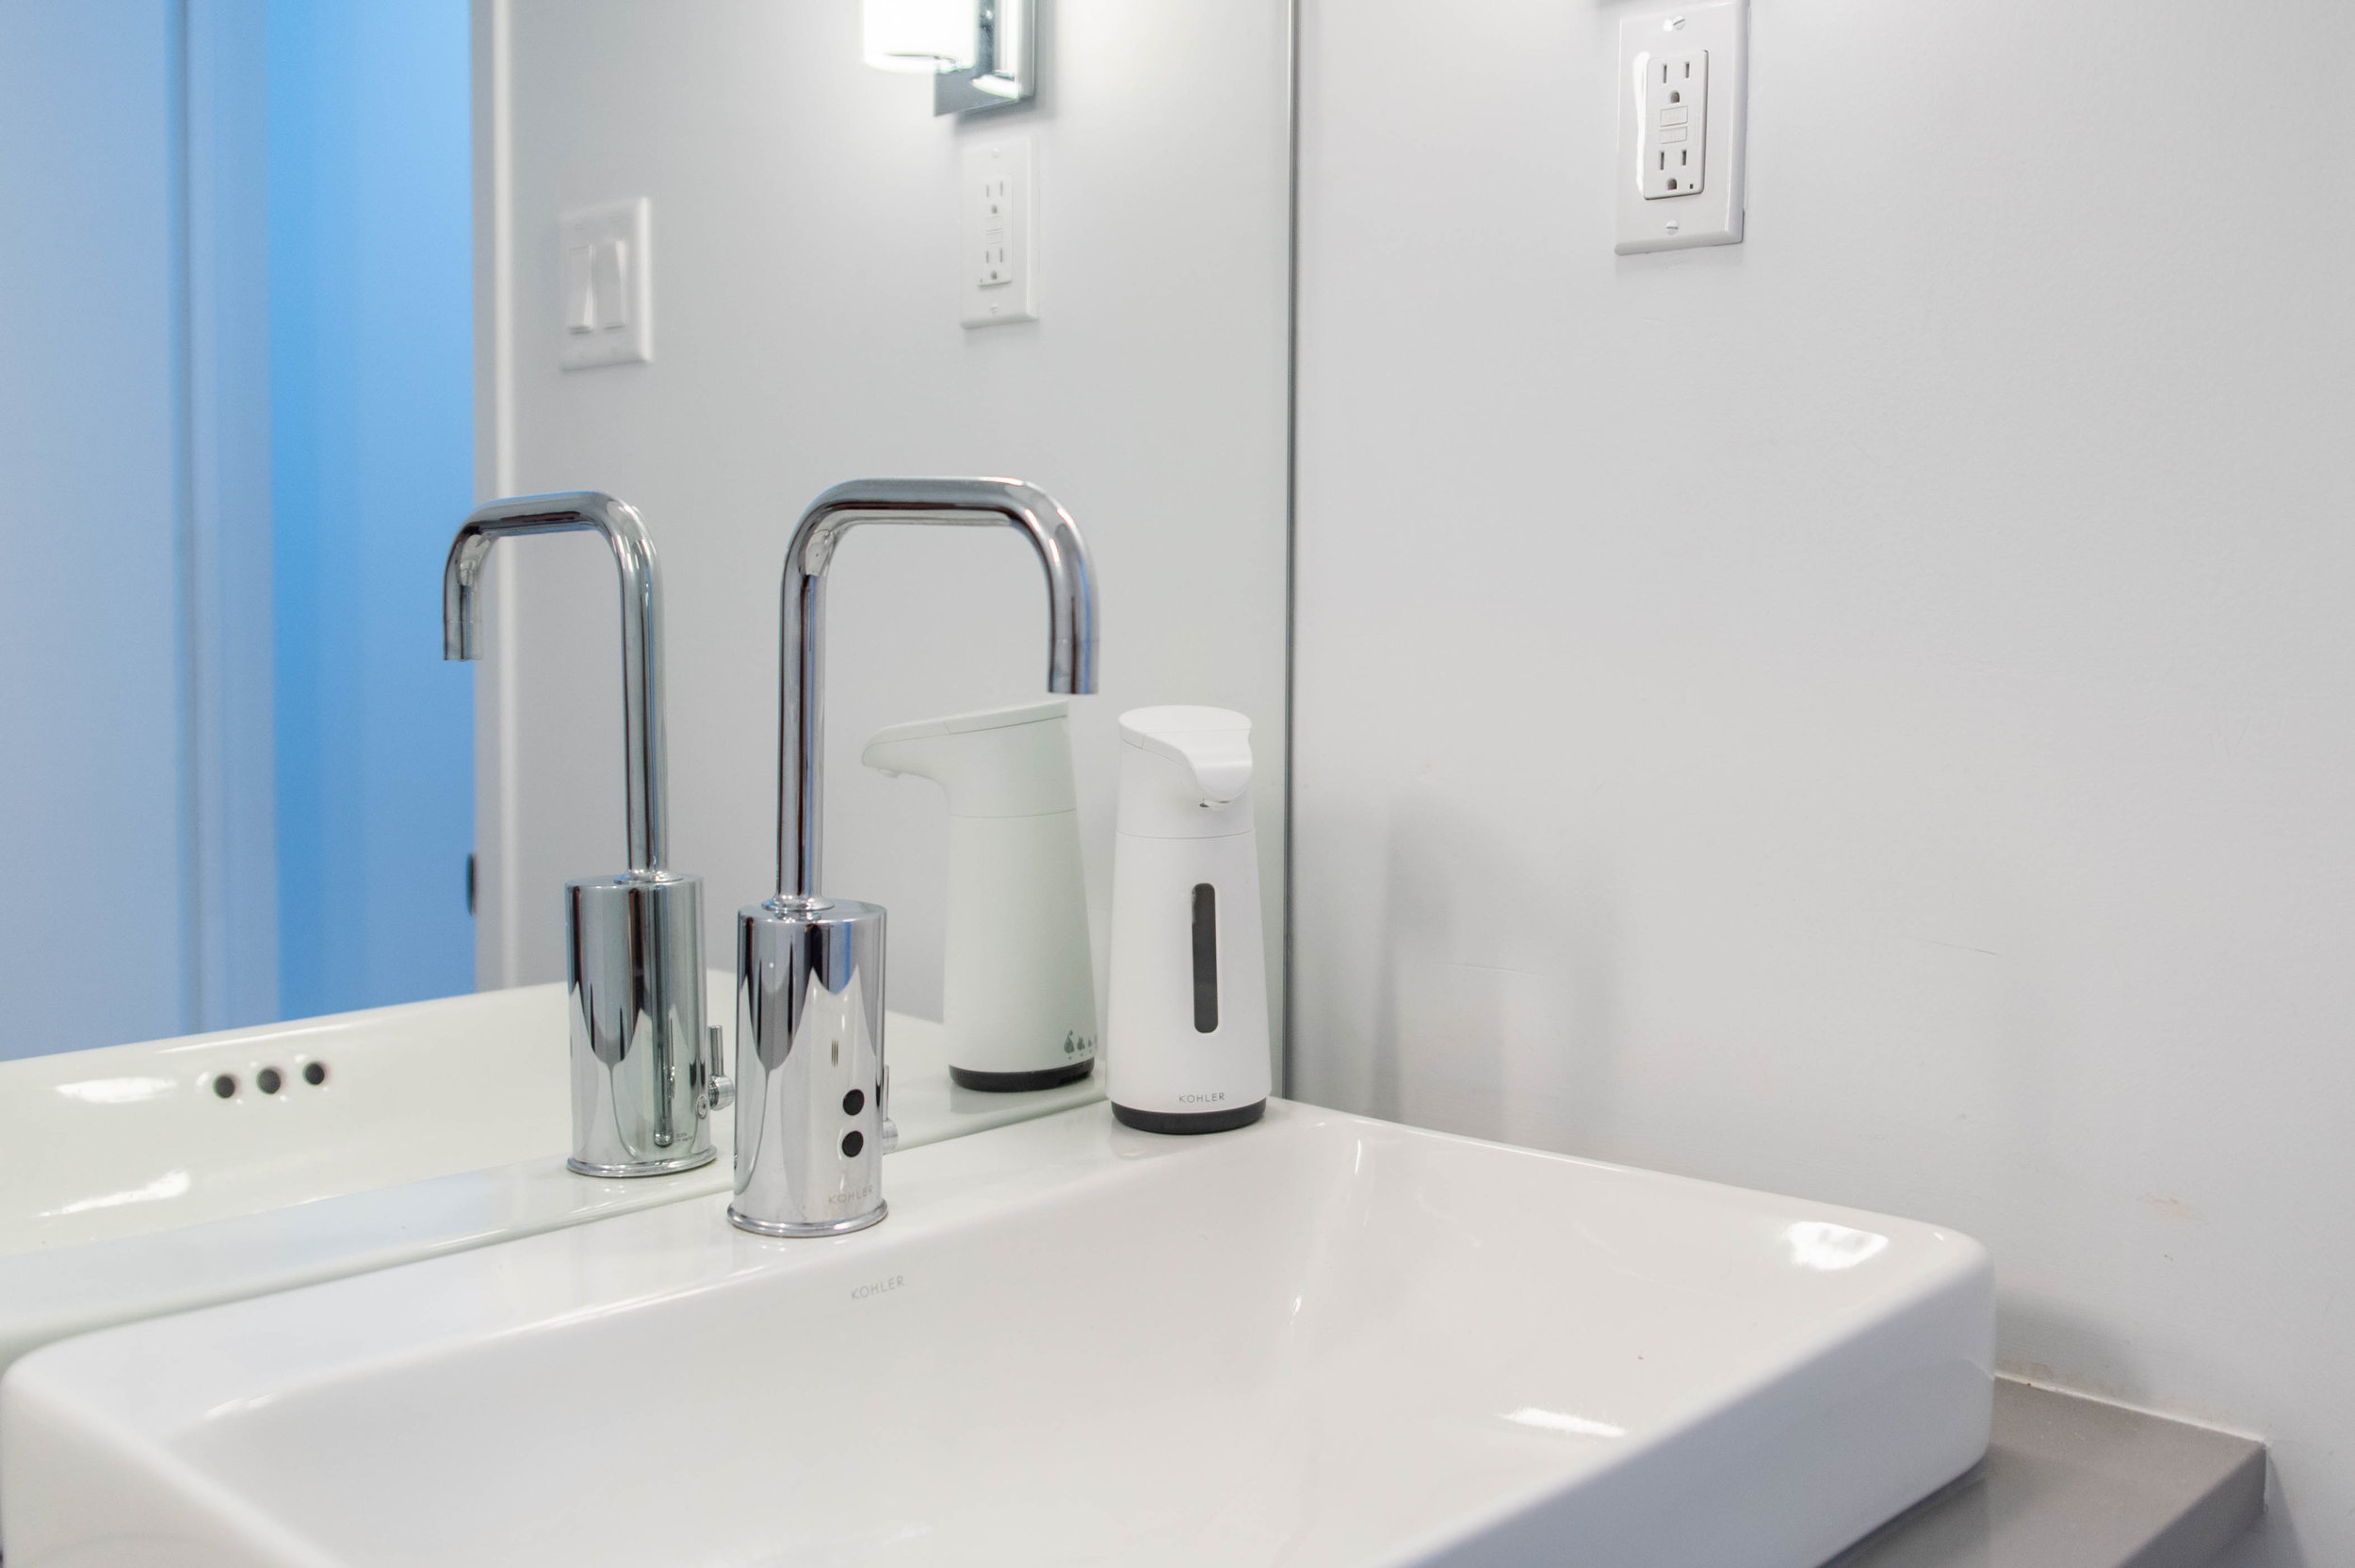 Kohler Touchless Faucet and Soap Dispenser - Automatic taps contribute to a more sustainable world in two main ways: